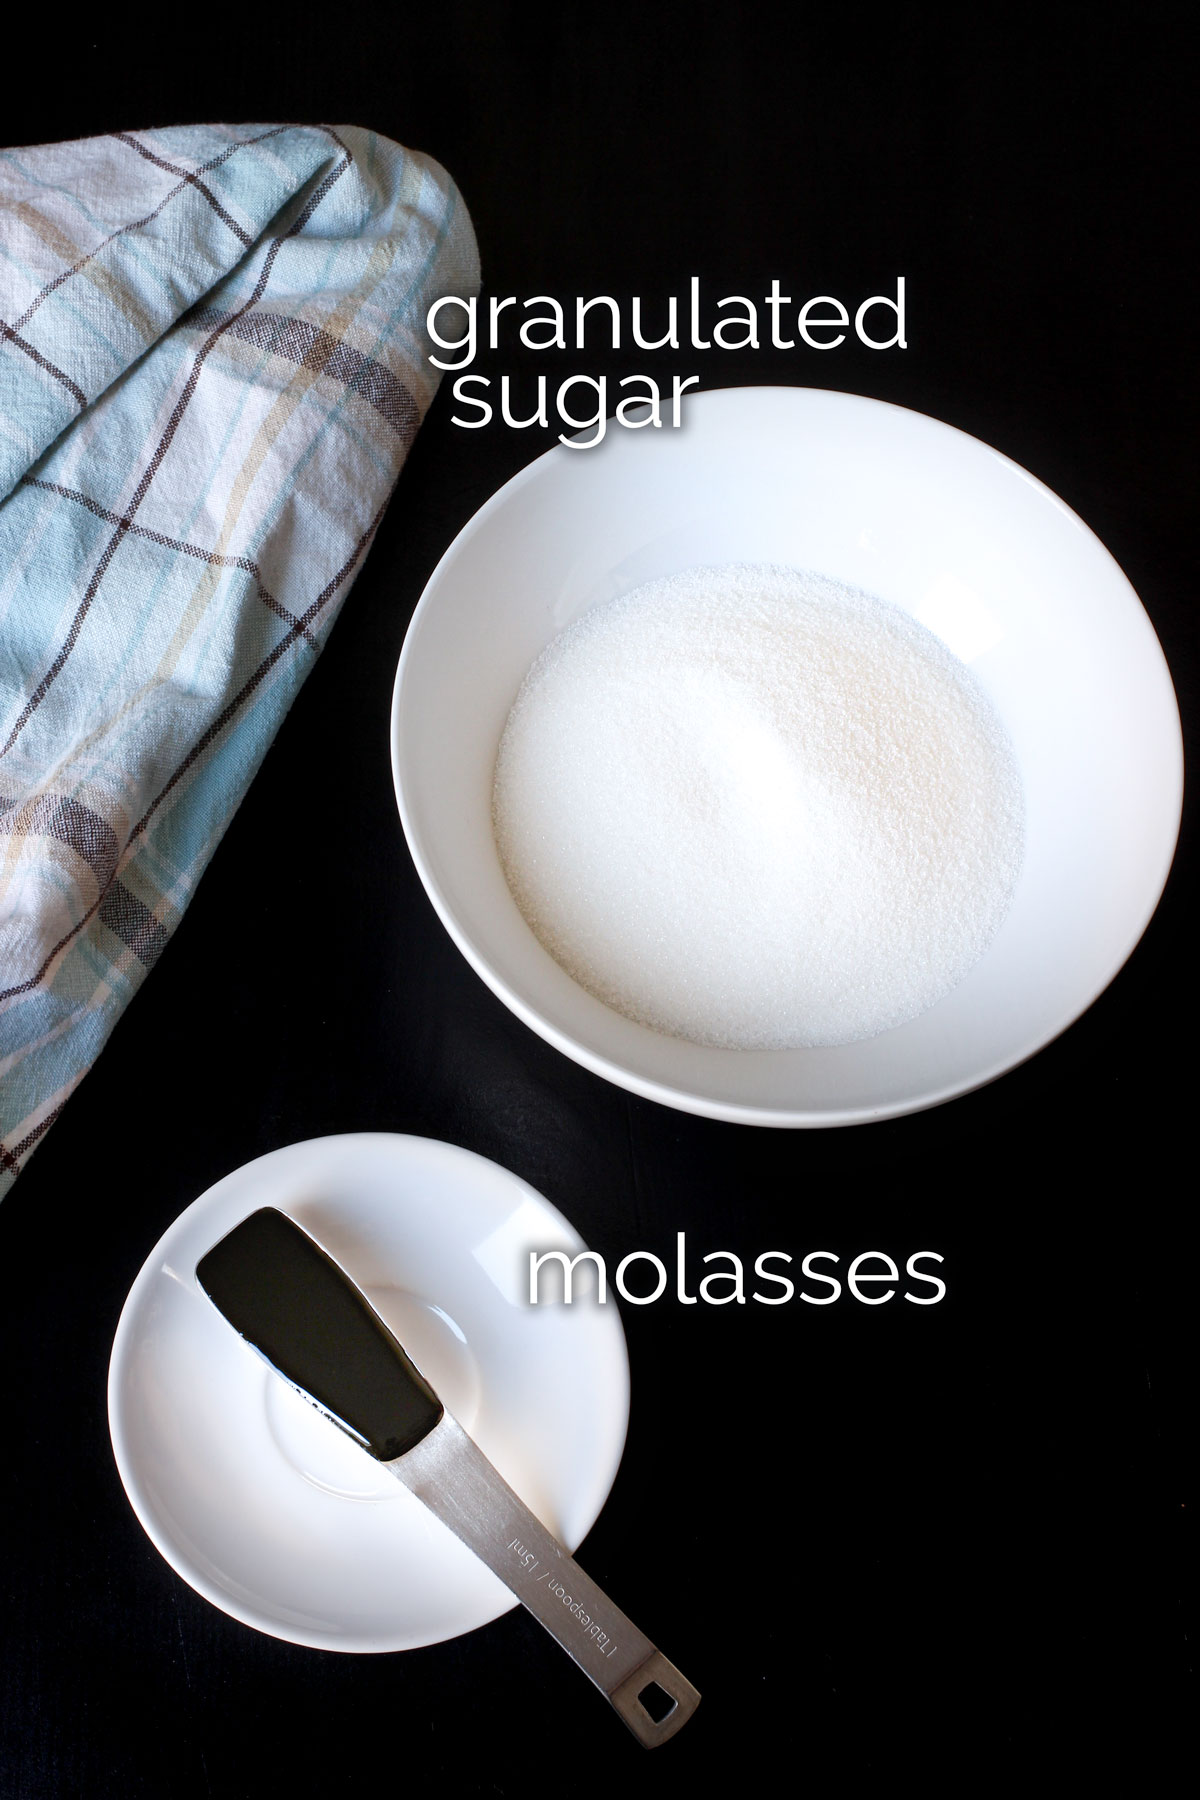 bowl of white sugar next to spoonful of molasses on table top with plaid kitchen towel.